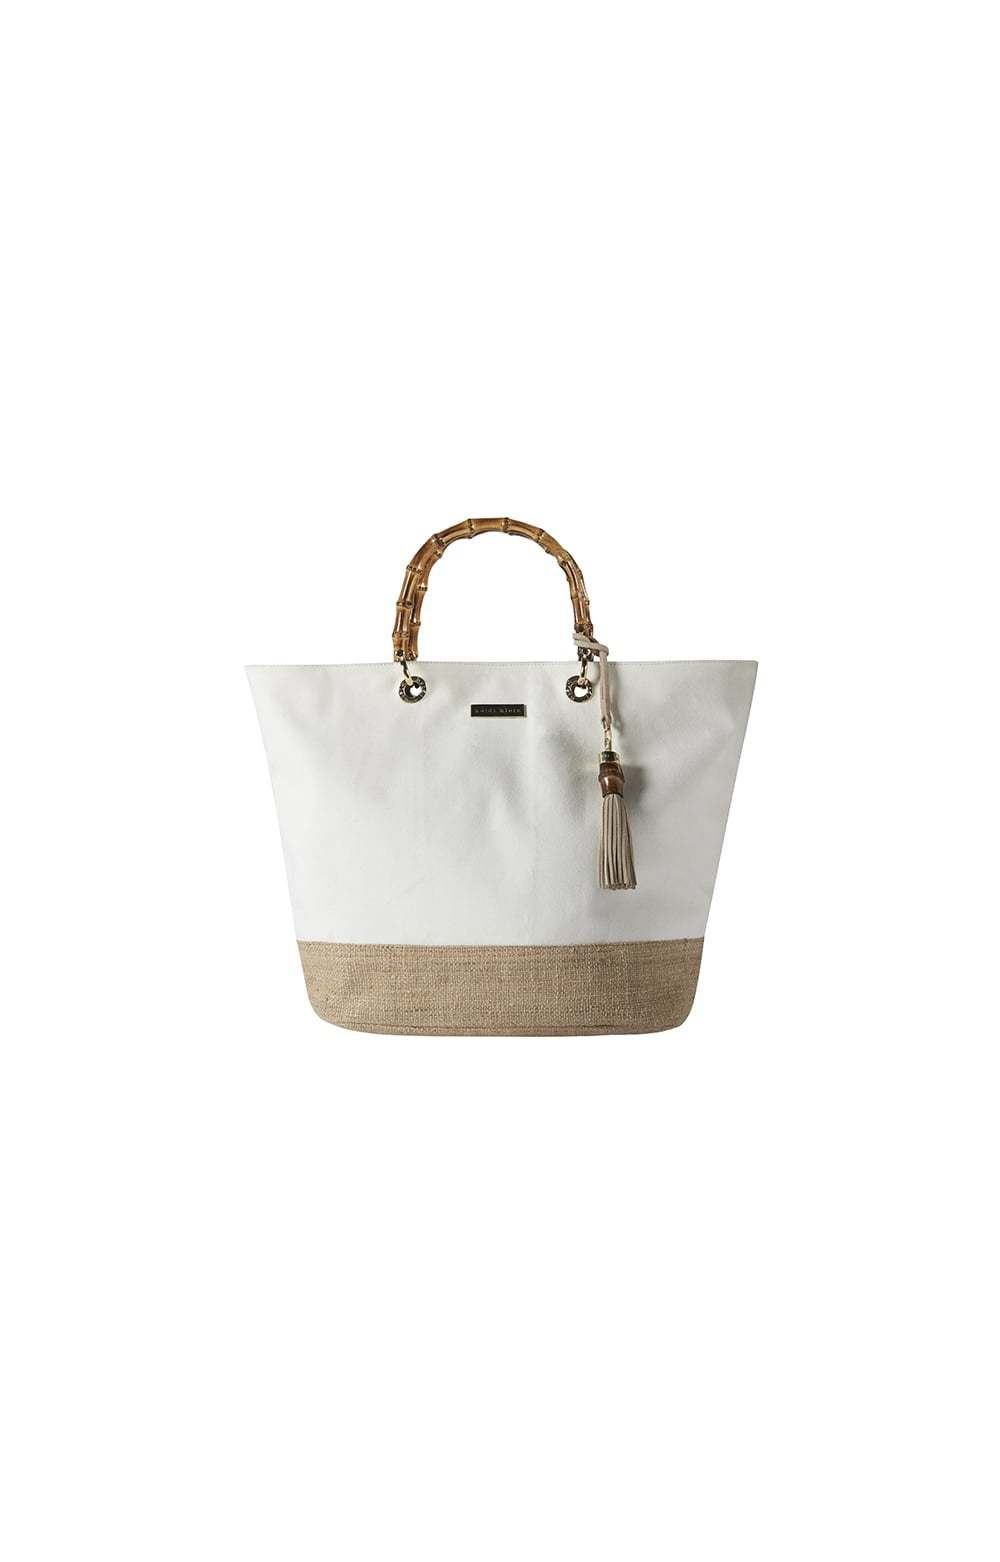 Natural Savannah Bay White Medium Bamboo Bag - predominant colour: white; secondary colour: camel; occasions: casual, creative work; type of pattern: standard; style: tote; length: handle; size: oversized; material: leather; embellishment: tassels; finish: plain; pattern: colourblock; season: s/s 2013